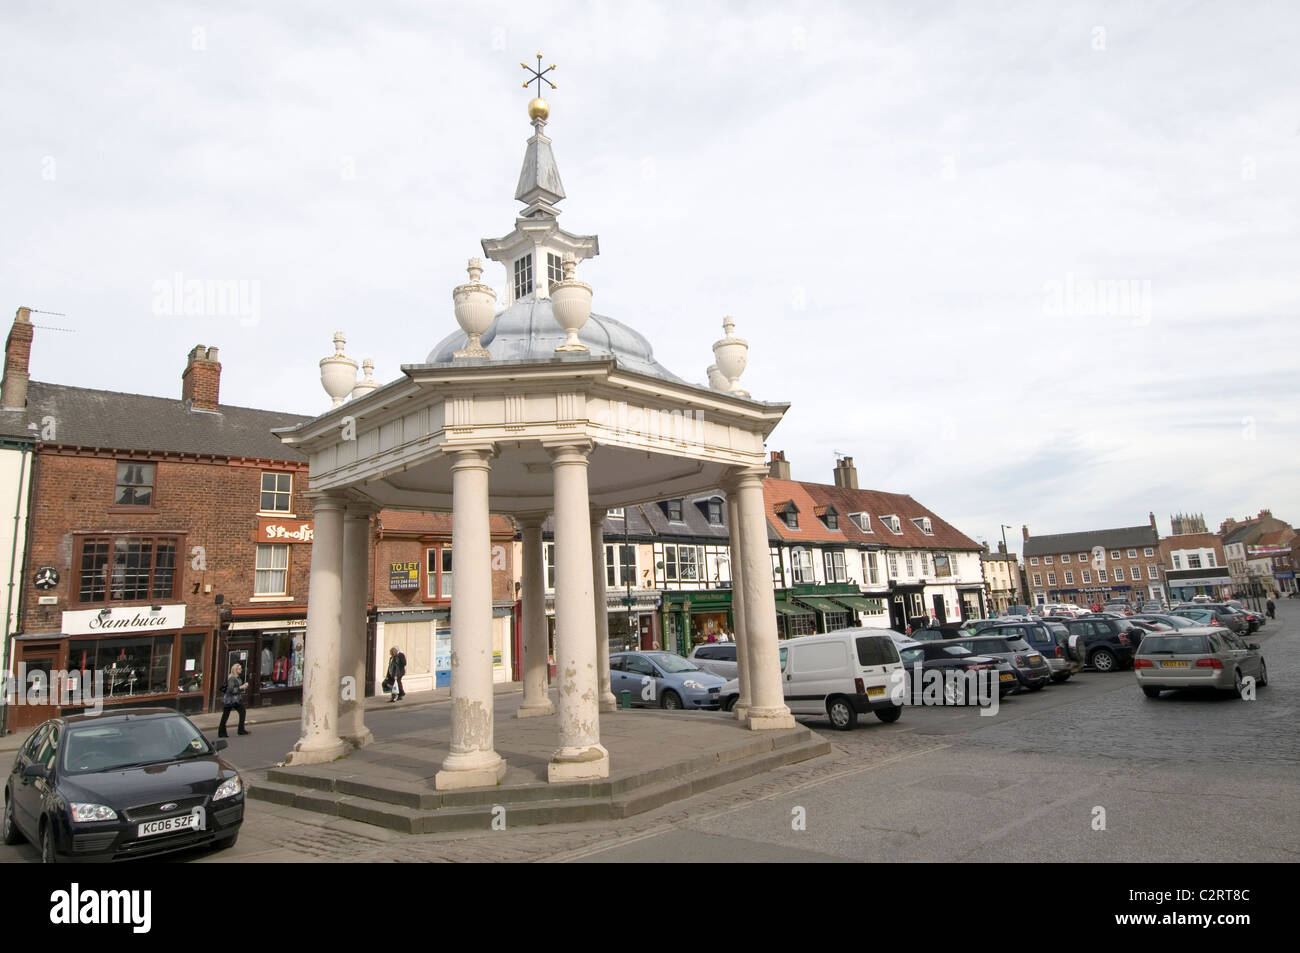 Beverley town center market square east Yorkshire town - Stock Image